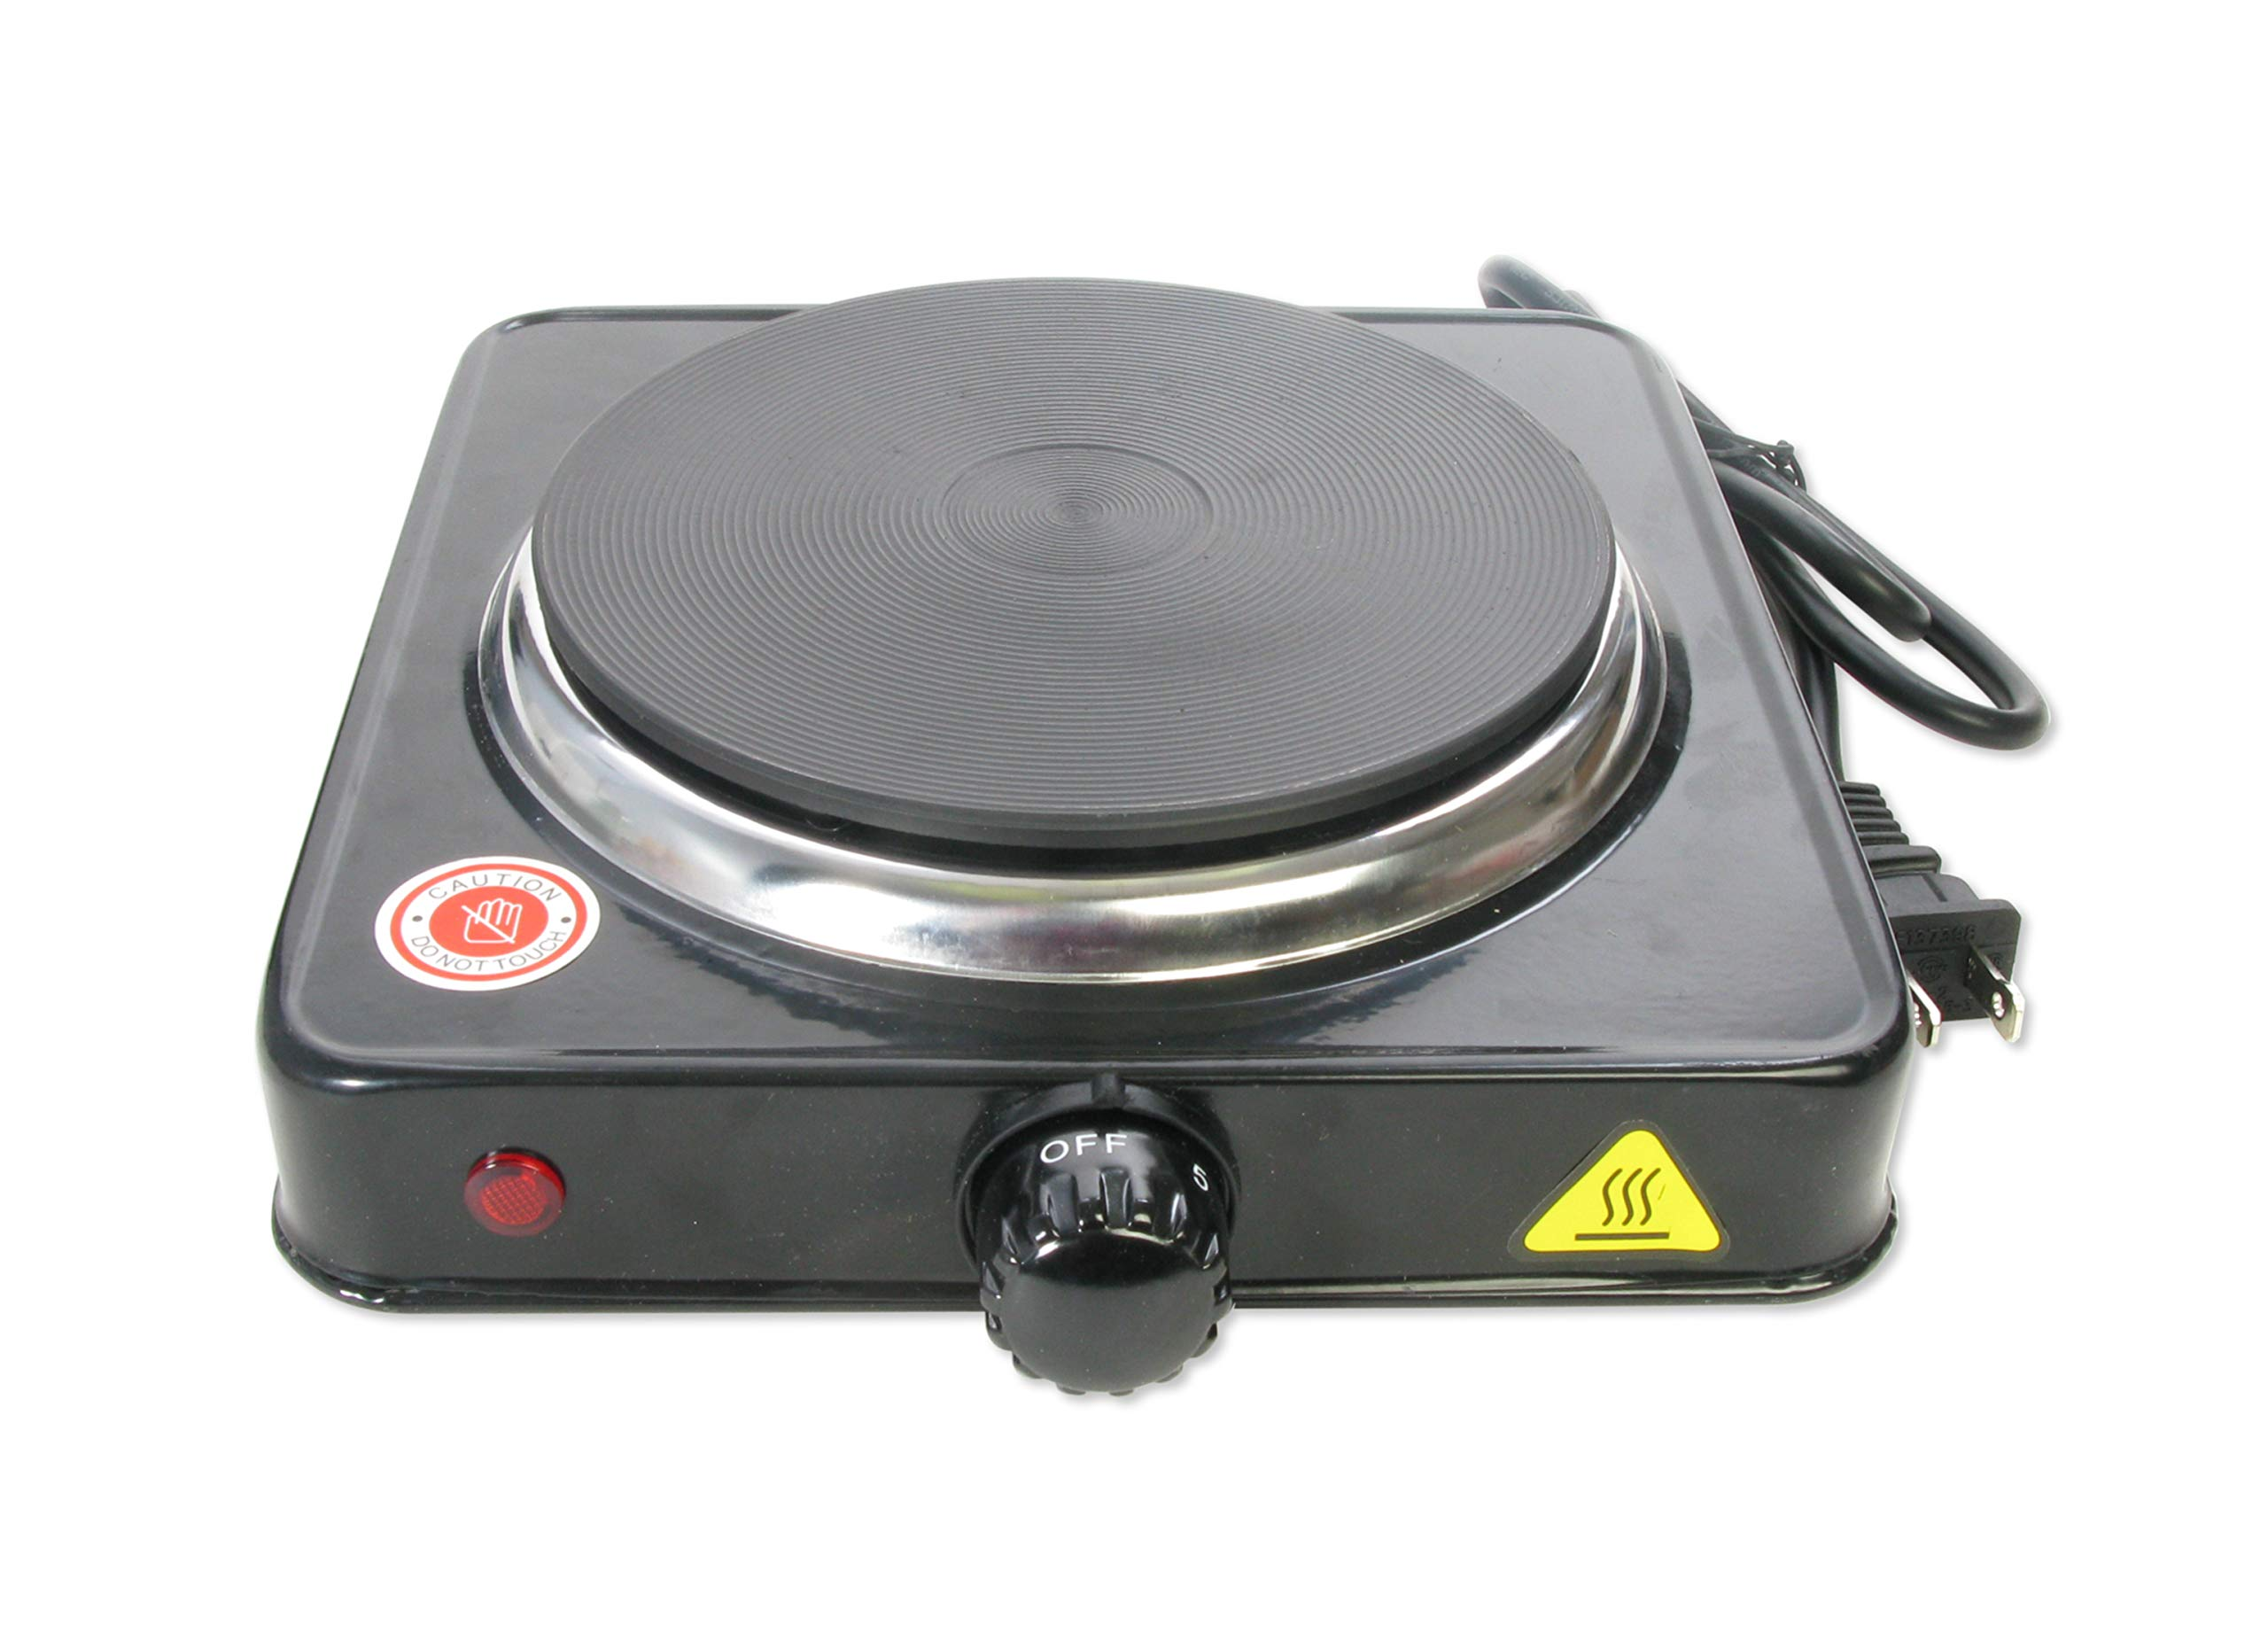 American Educational Products 7-225 Hot Plate, 154 mm Diameter, 1000W, Grade: 9 by American Educational Products